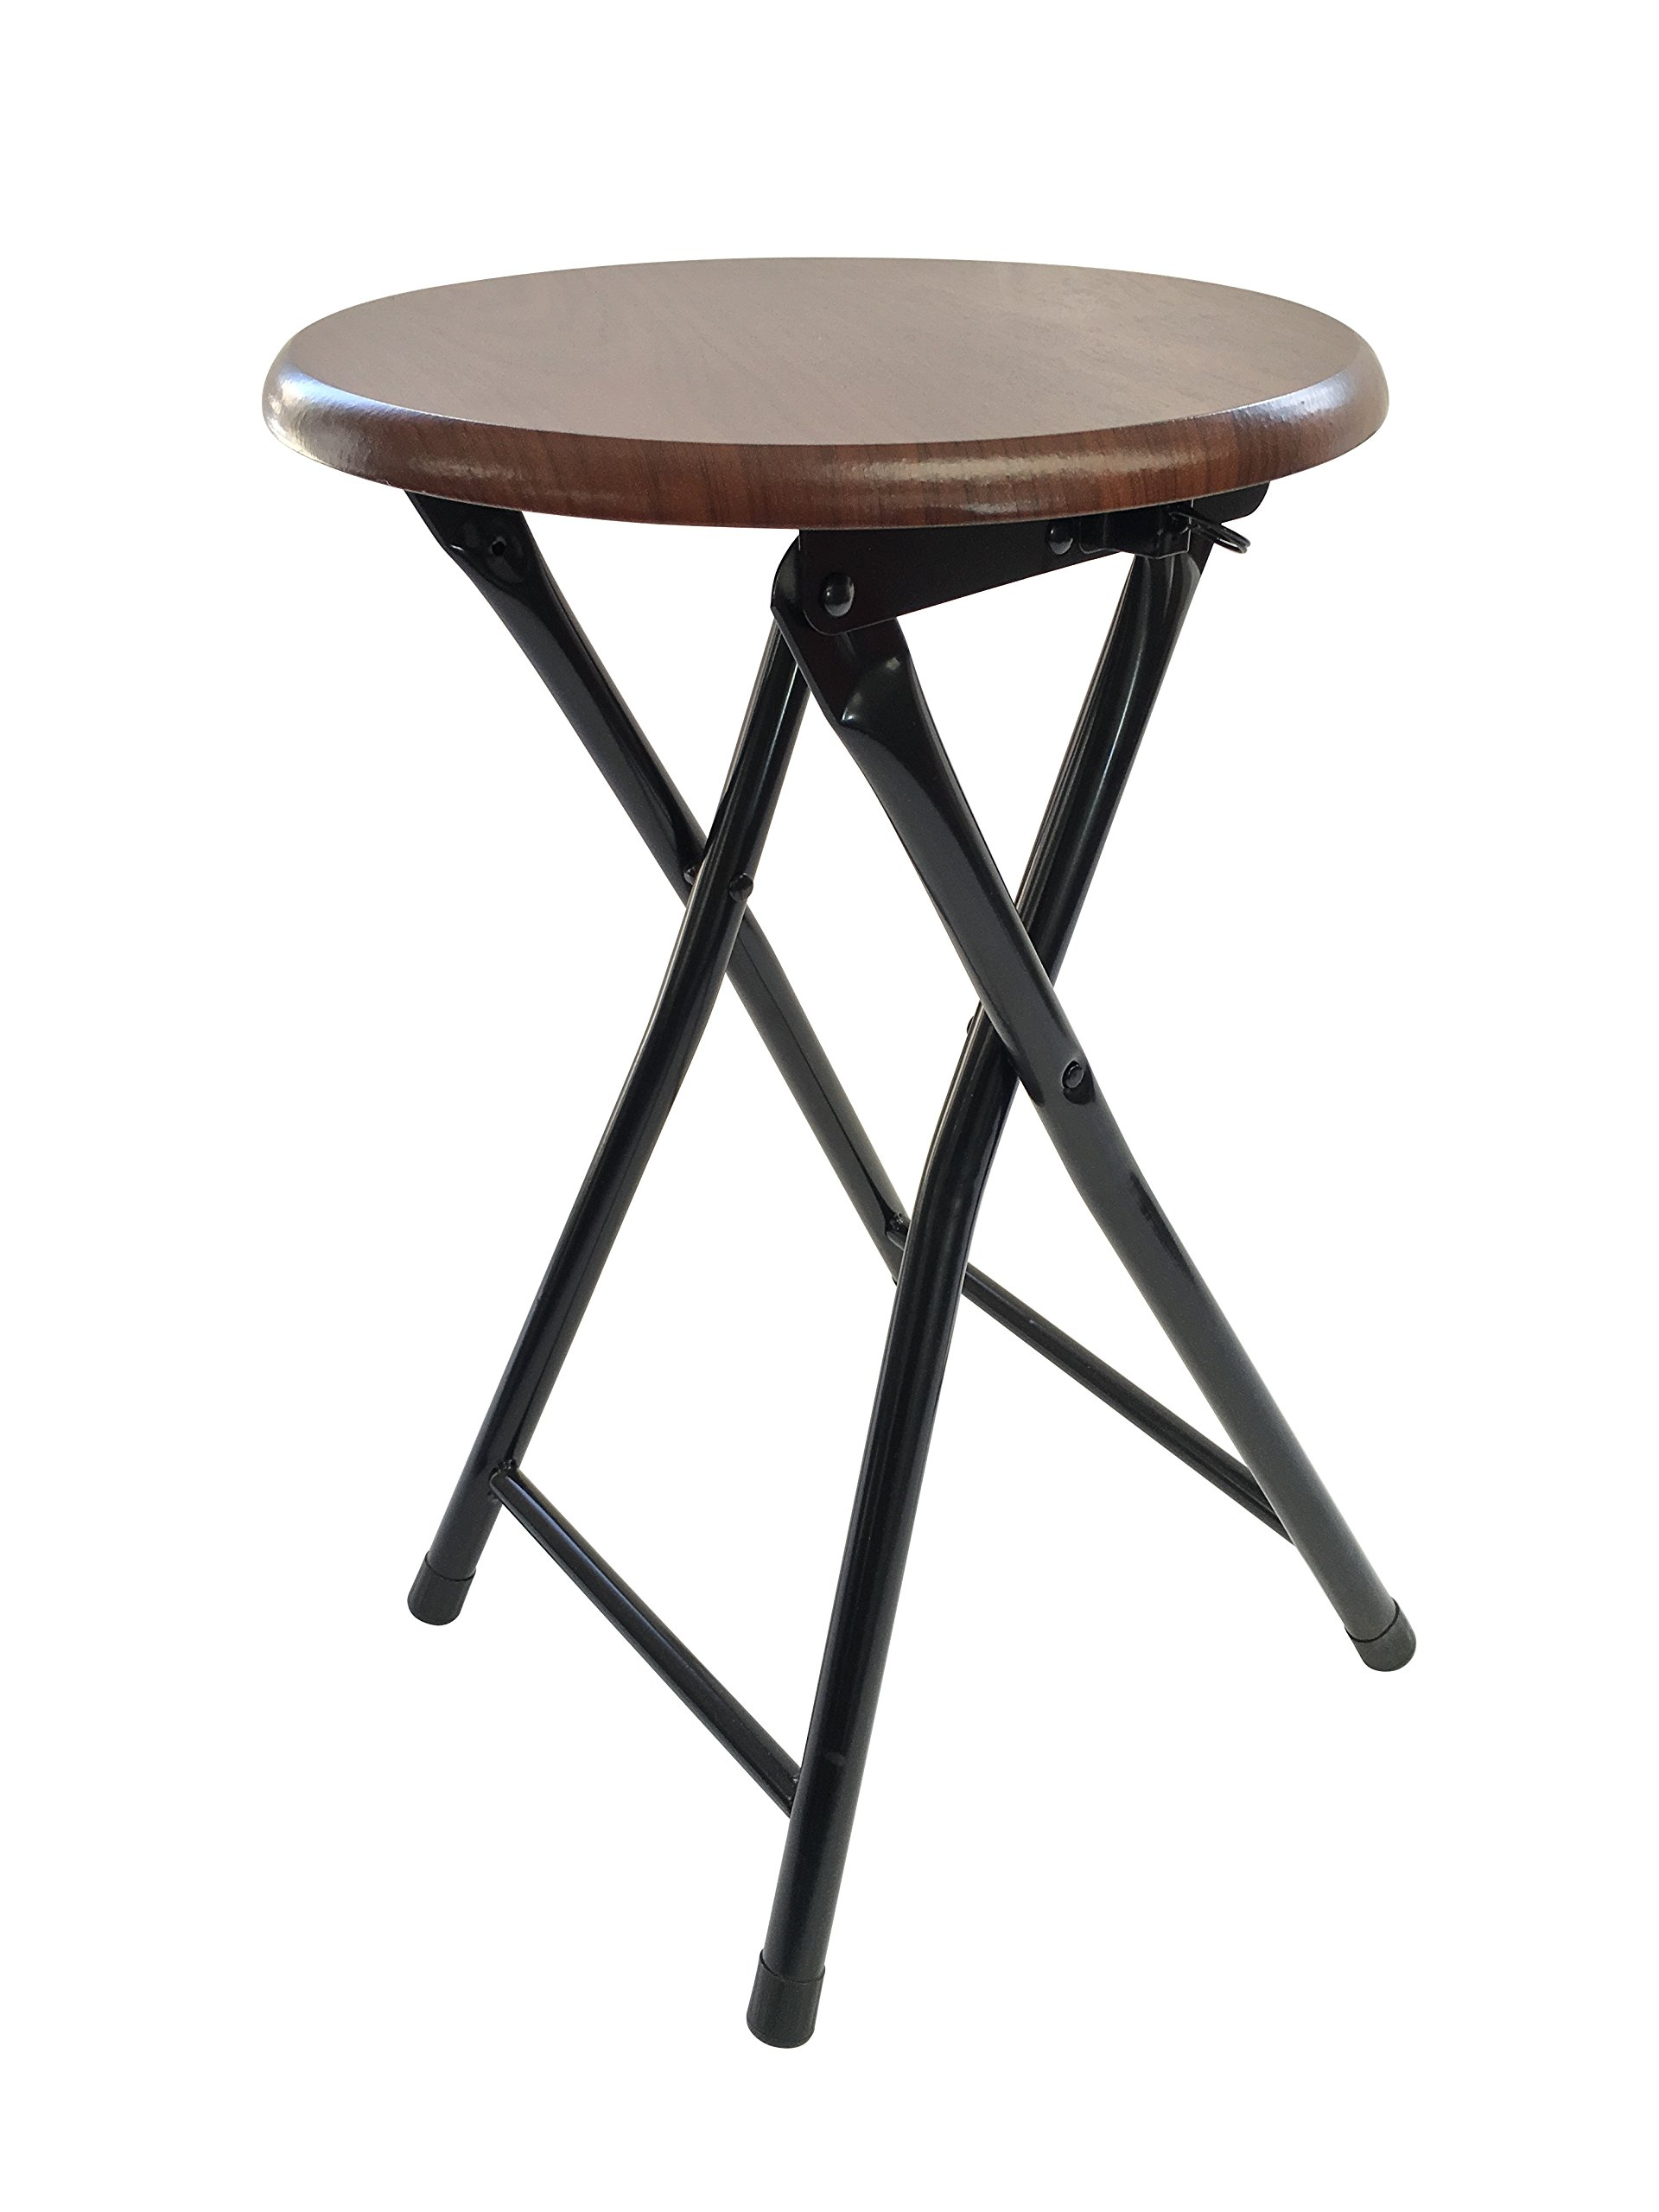 Wee's Beyond 1210-CR Folding Wooden Stool